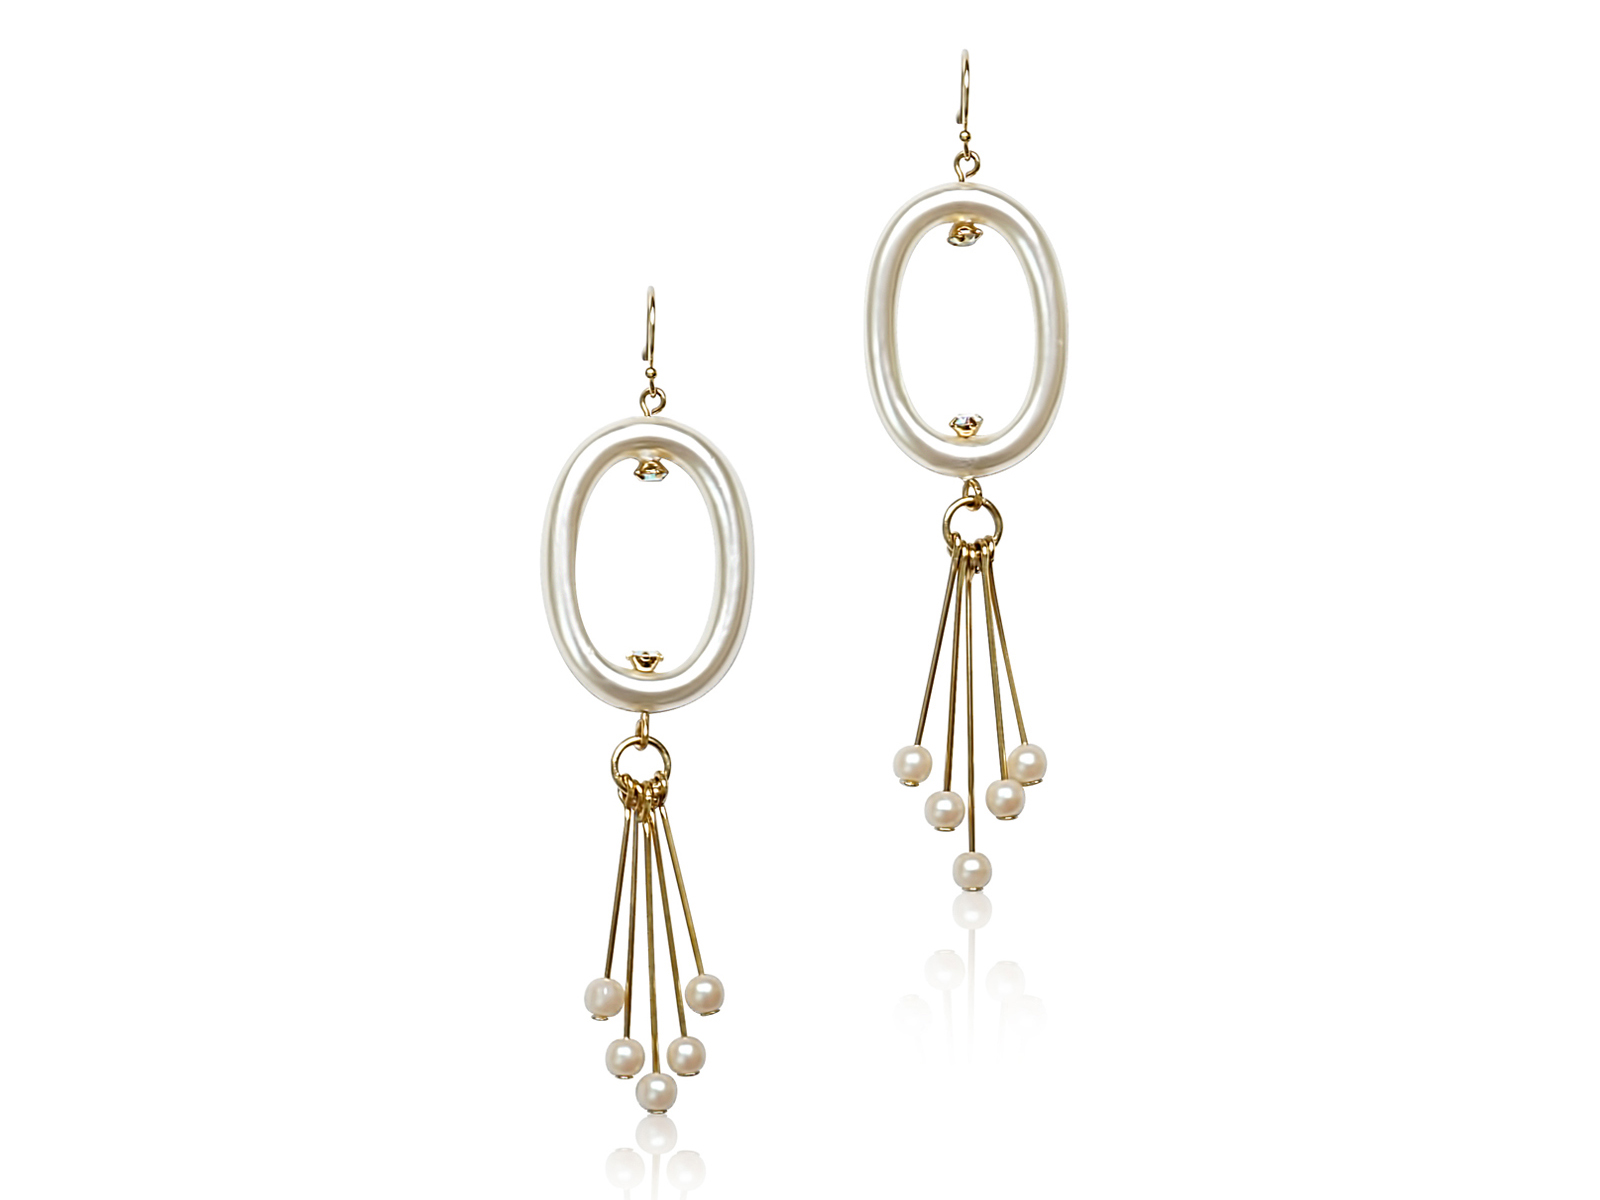 HOLLY STATEMENT EARRINGS